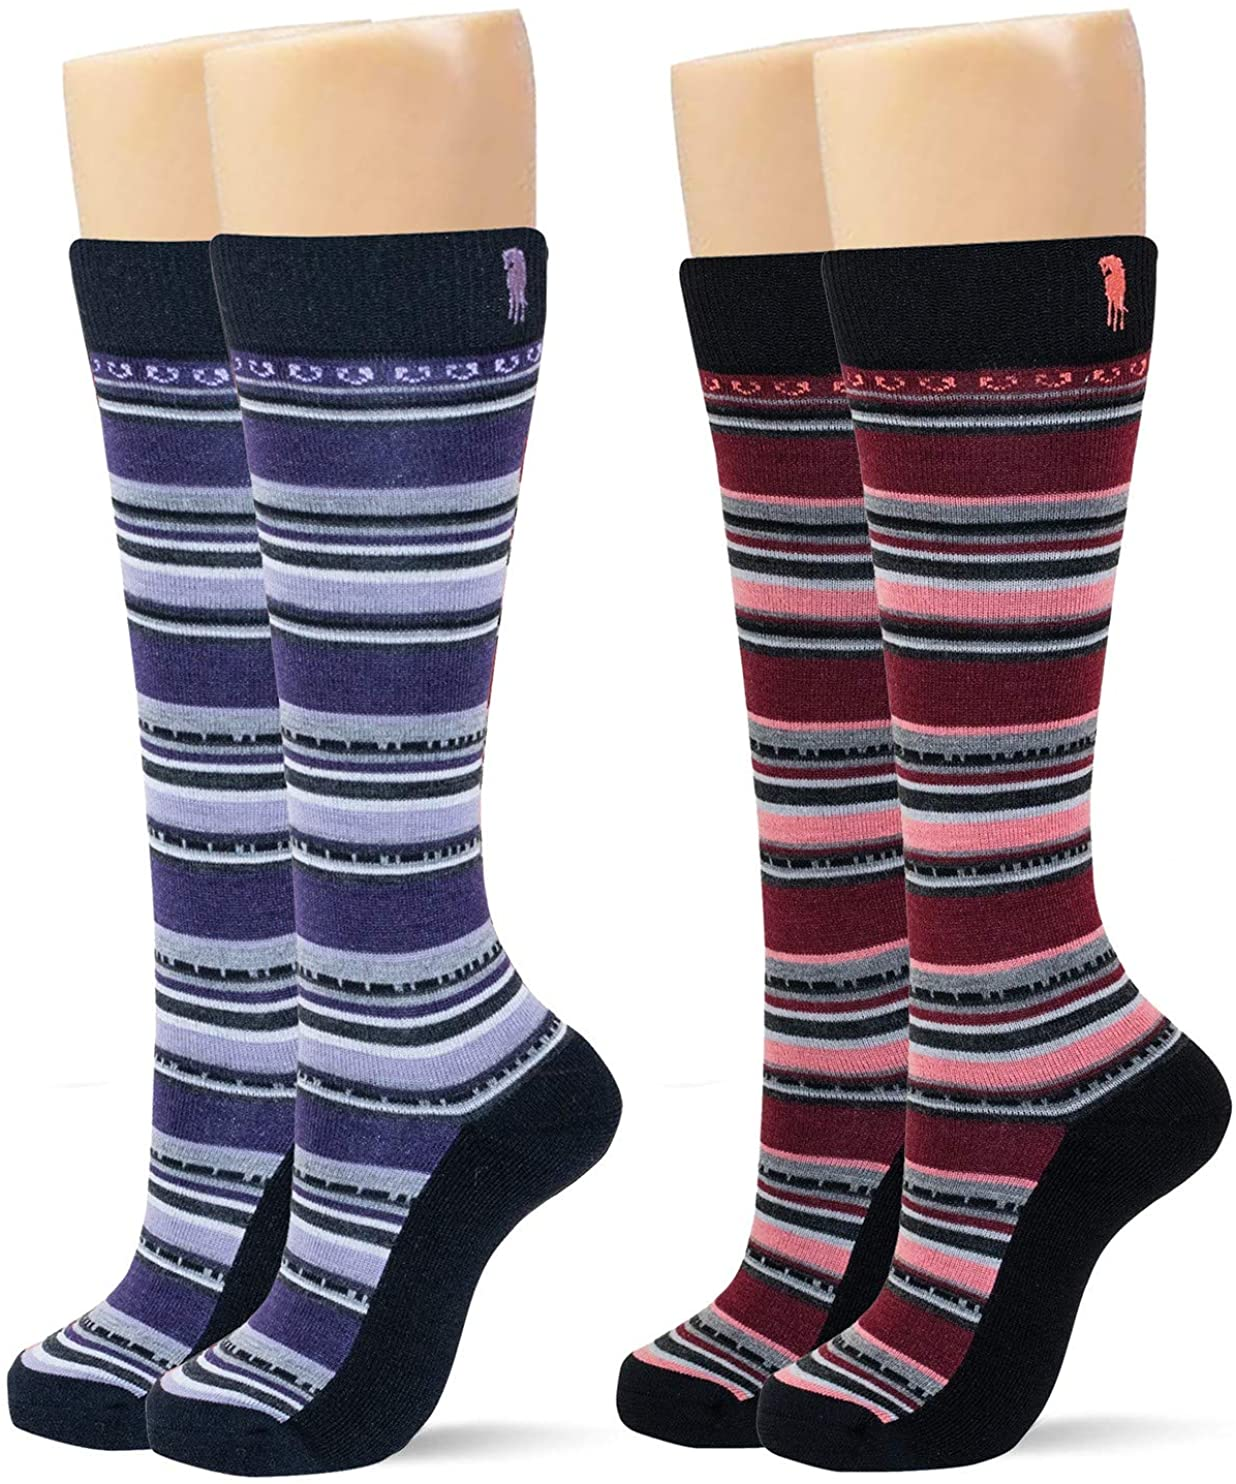 NobleWool Performance Boot Socks Pack of 2 (One-Size)